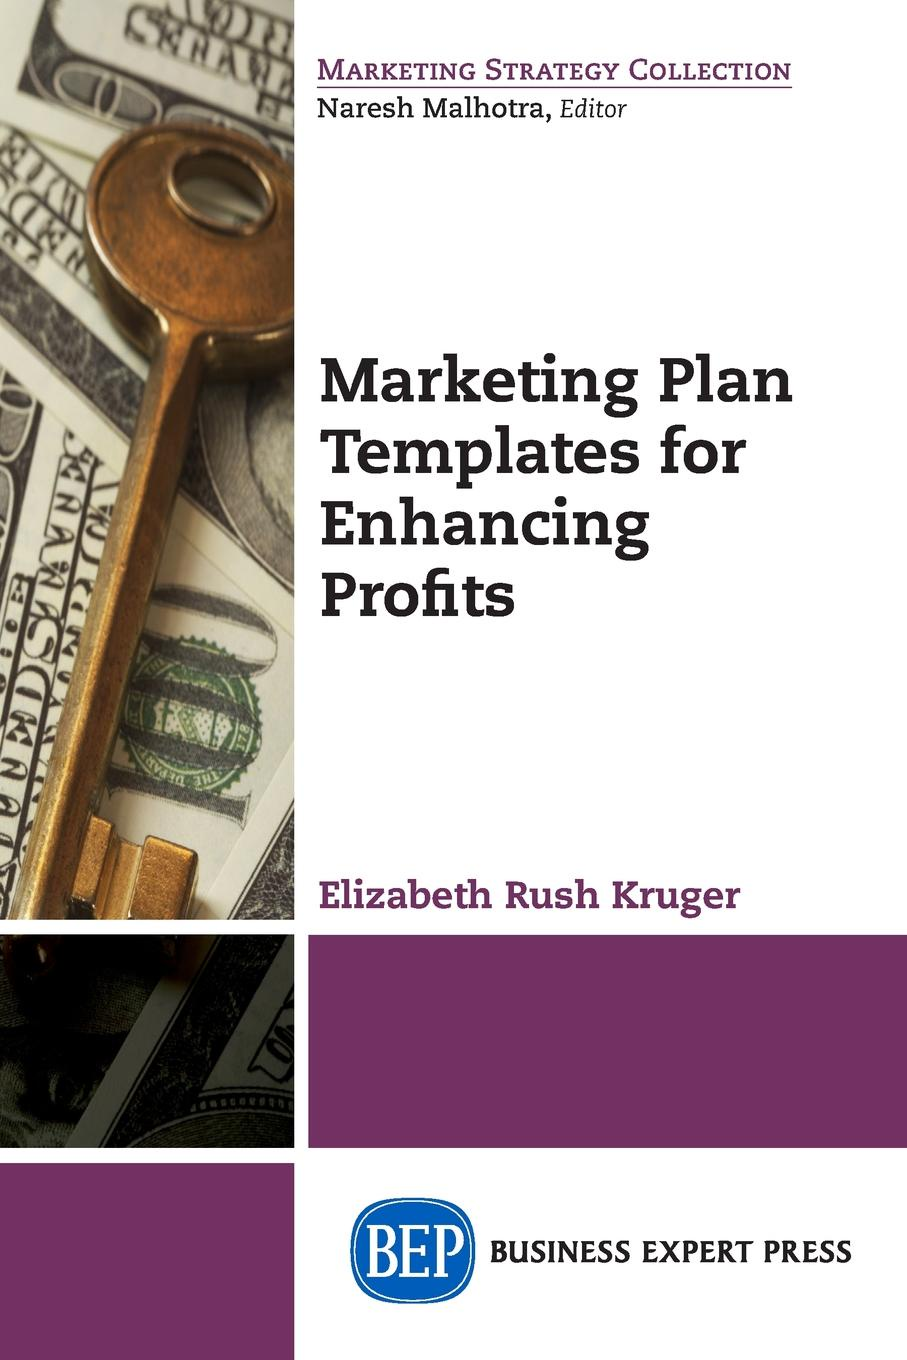 Elizabeth Rush Kruger Marketing Plan Templates for Enhancing Profits suzanne morse w smart communities how citizens and local leaders can use strategic thinking to build a brighter future